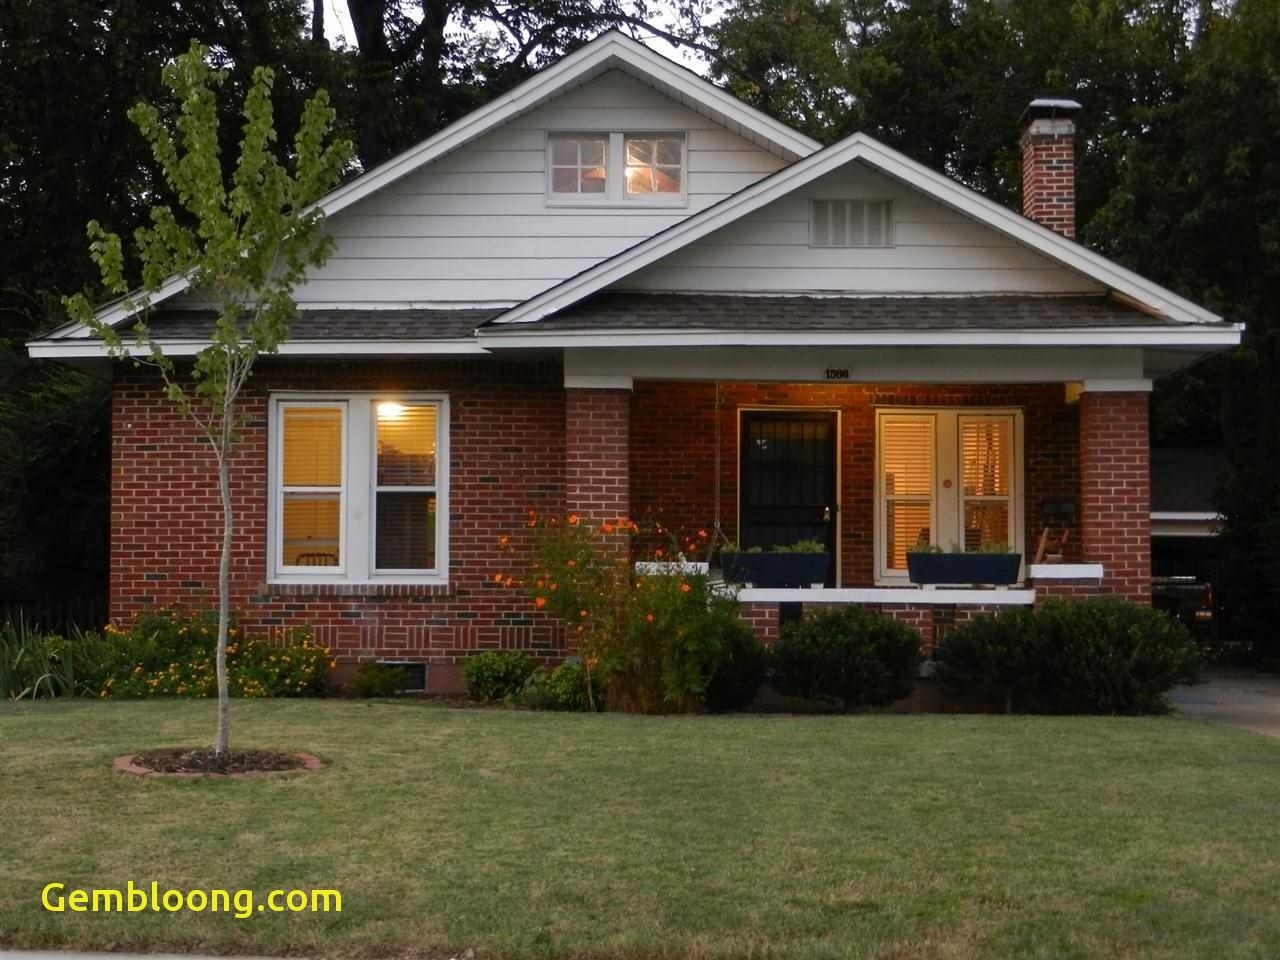 Awesome 3 Bedroom Home For Sale Near Me Delightful To My Blog In This Particular Time Period I Ll Expl Cheap Apartment For Rent Renting A House House Design